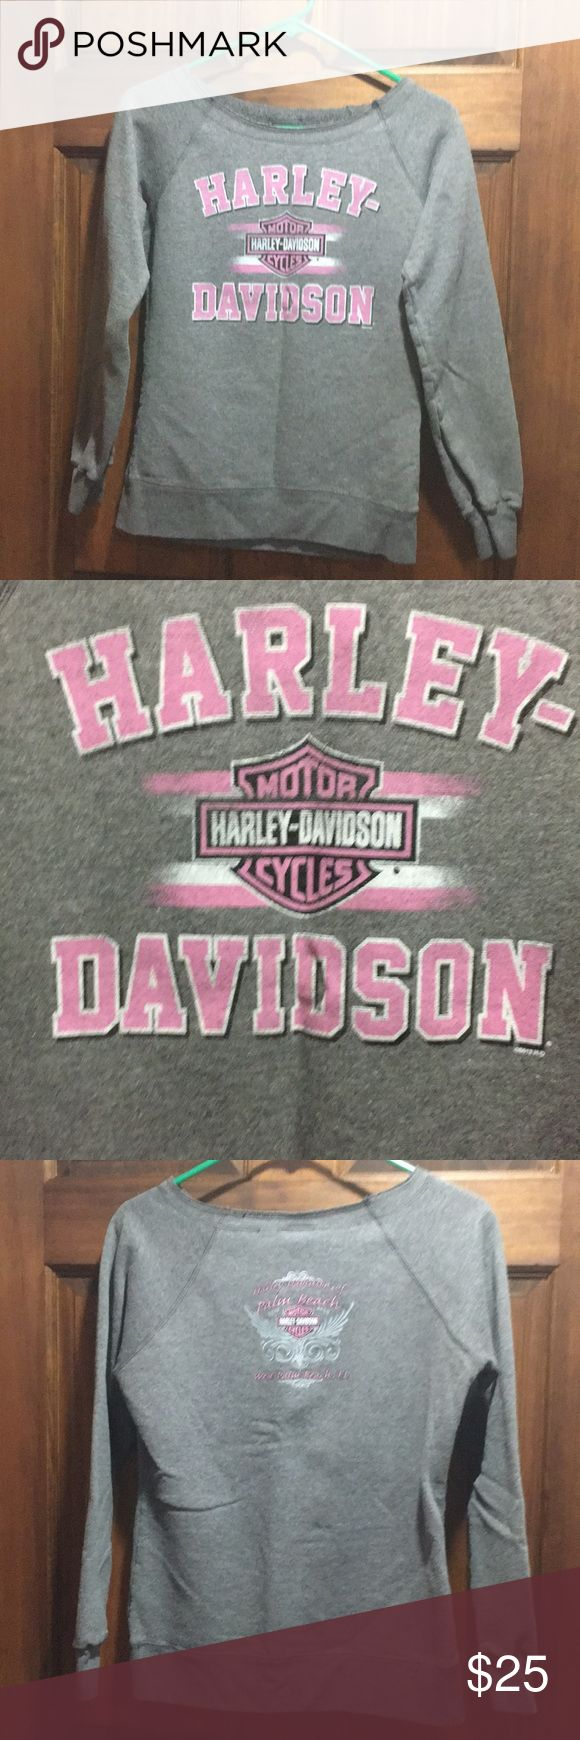 Harley Davidson Sweatshirt Women's Harley Davidson long sleeve sweatshirt.  Size small.  Gray with pink lettering.  From the Harley Davidson store in West Palm Beach; Florida. Like new condition!  Super cute! Harley-Davidson Sweaters Crew & Scoop Necks